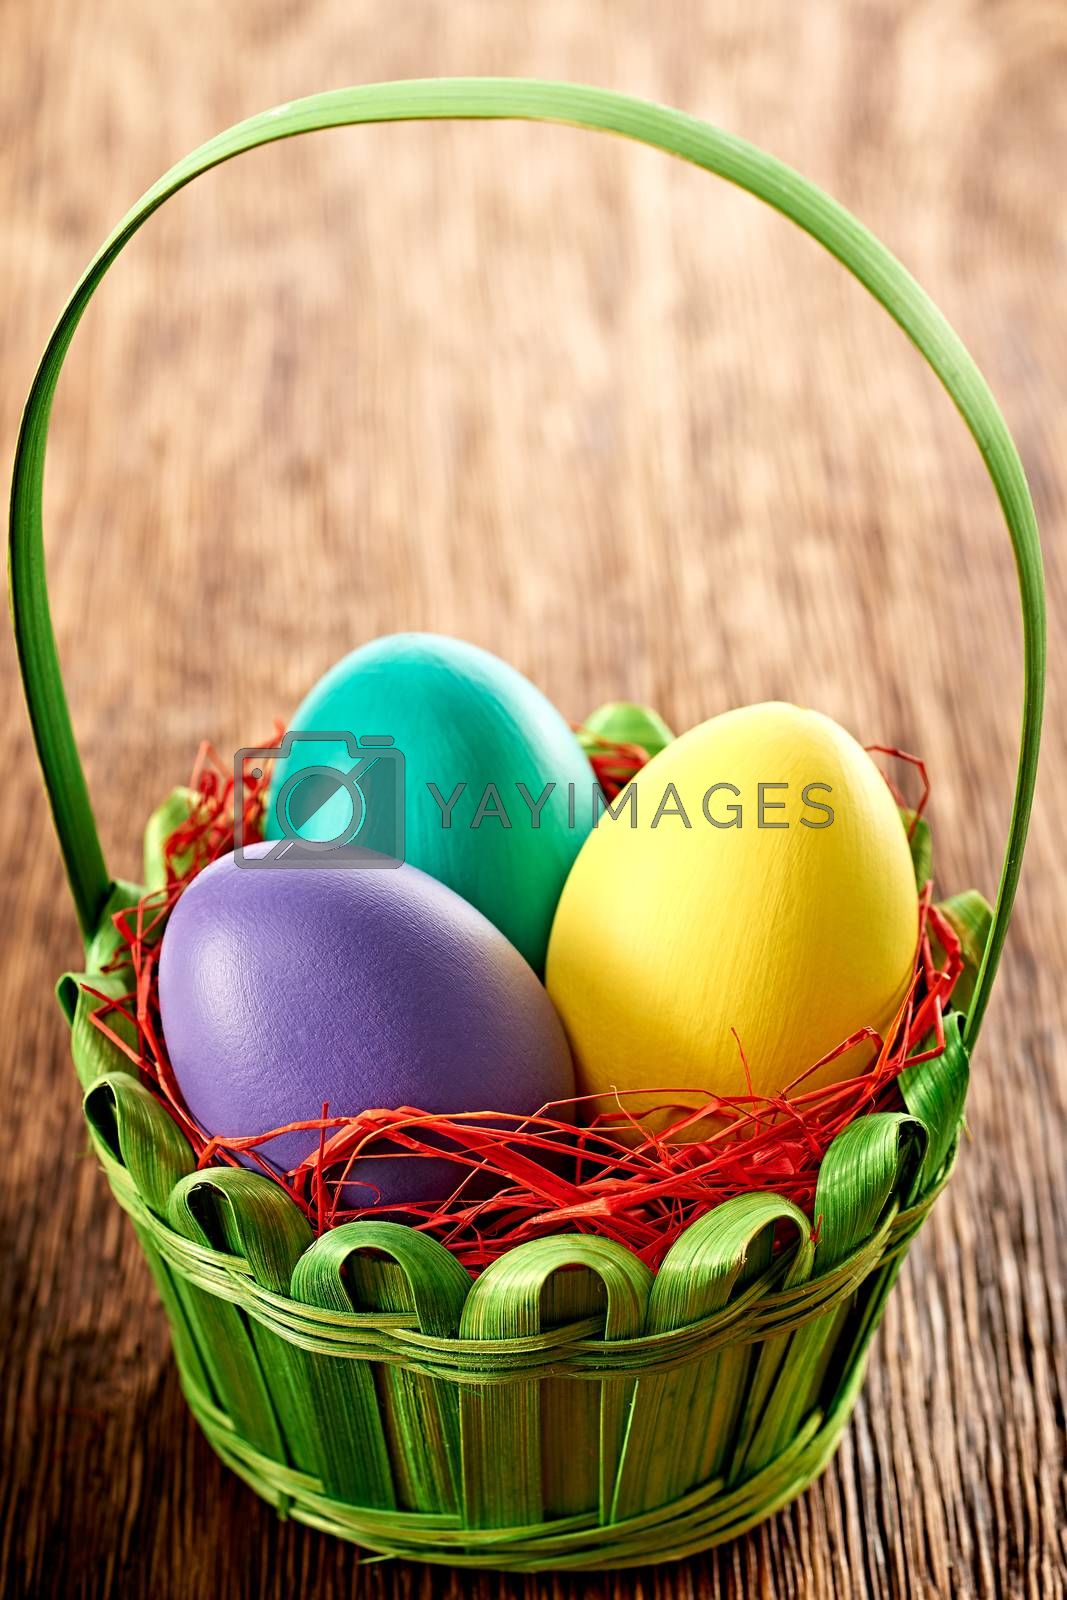 Easter eggs in green basket. Hand painted decorated multicolored eggs on wooden background. Unusual creative holiday greeting card